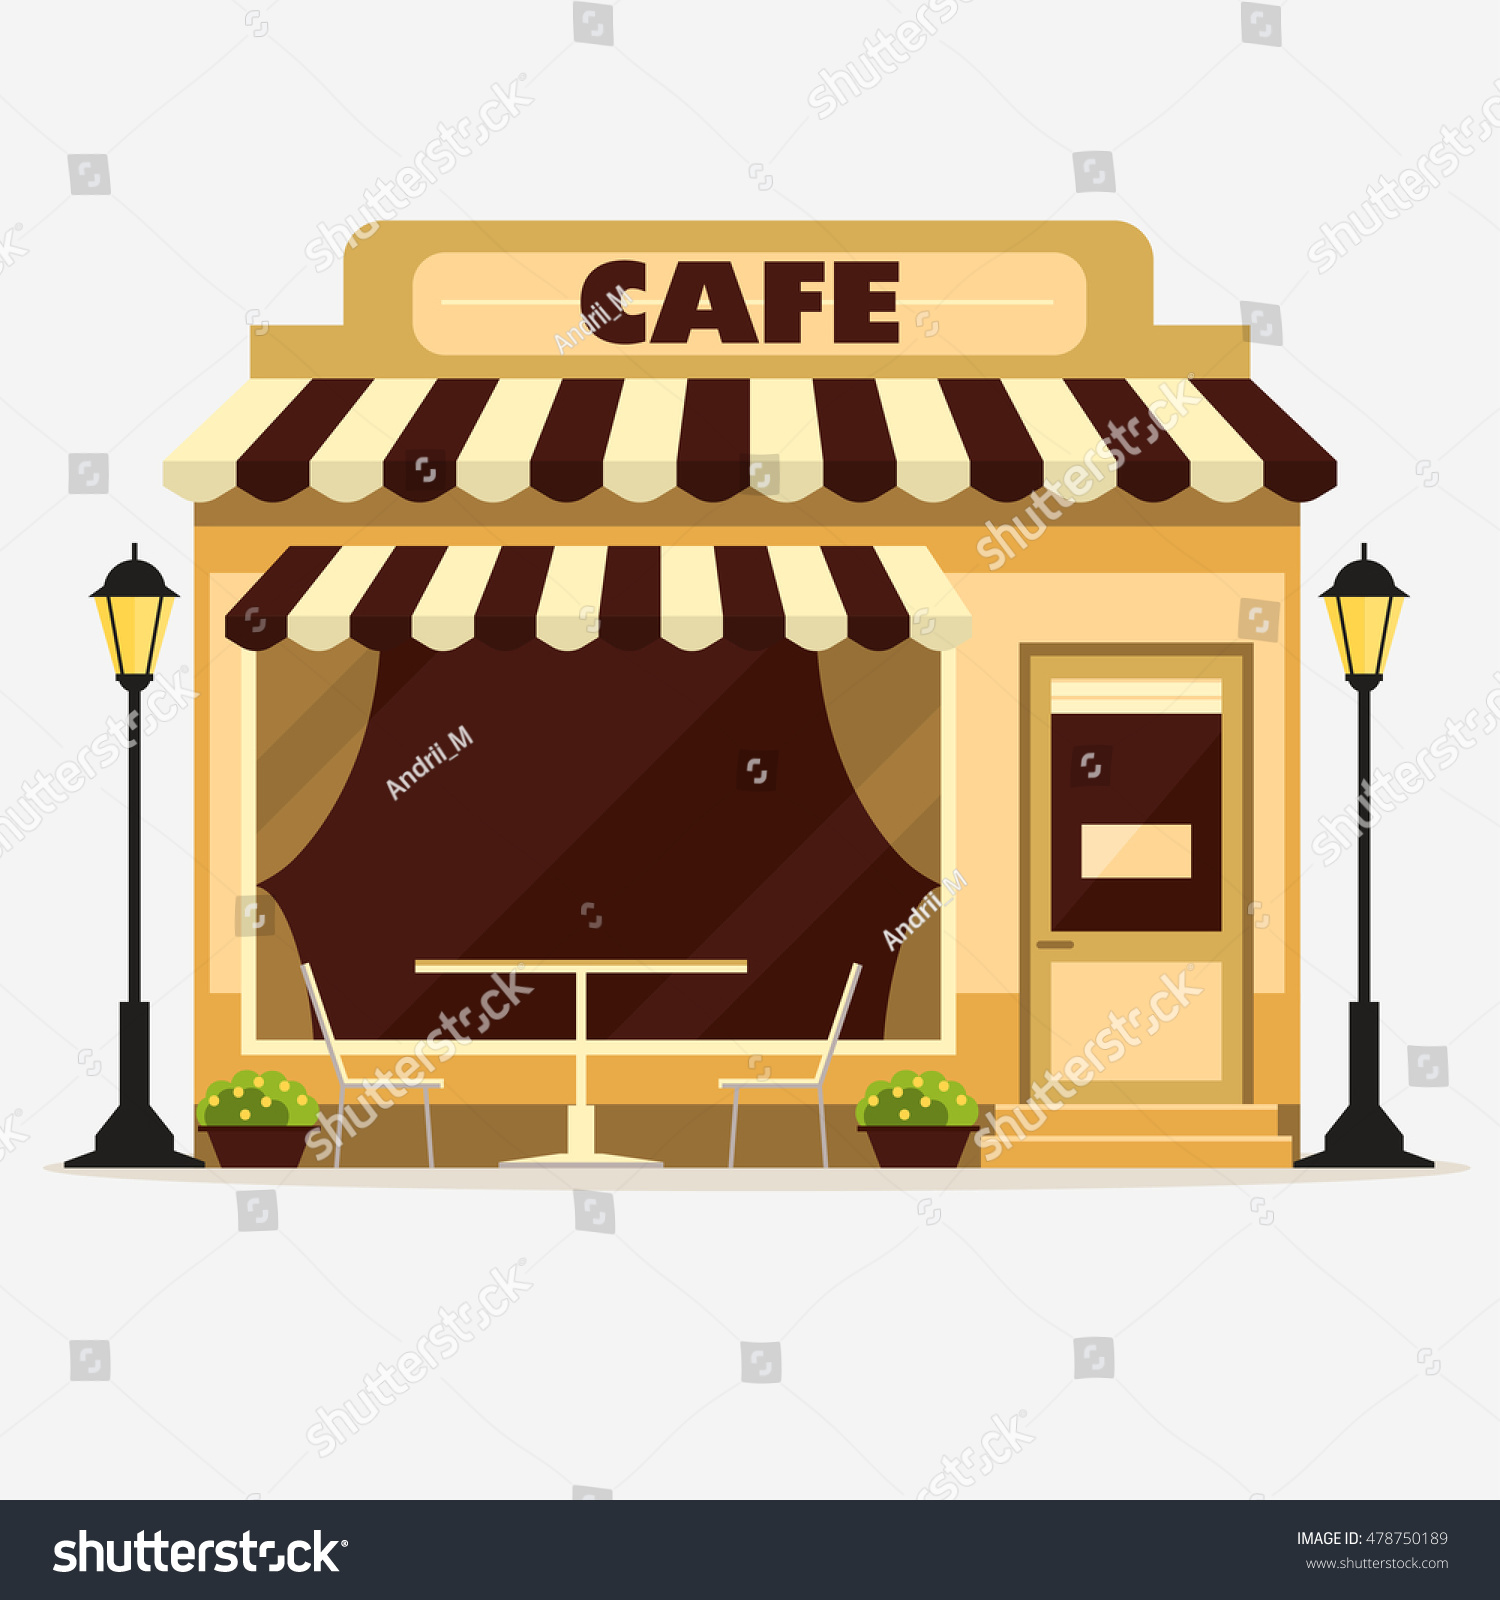 Vector De Stock Libre De Regalias Sobre Cafe Street Shop Building Facade Small478750189